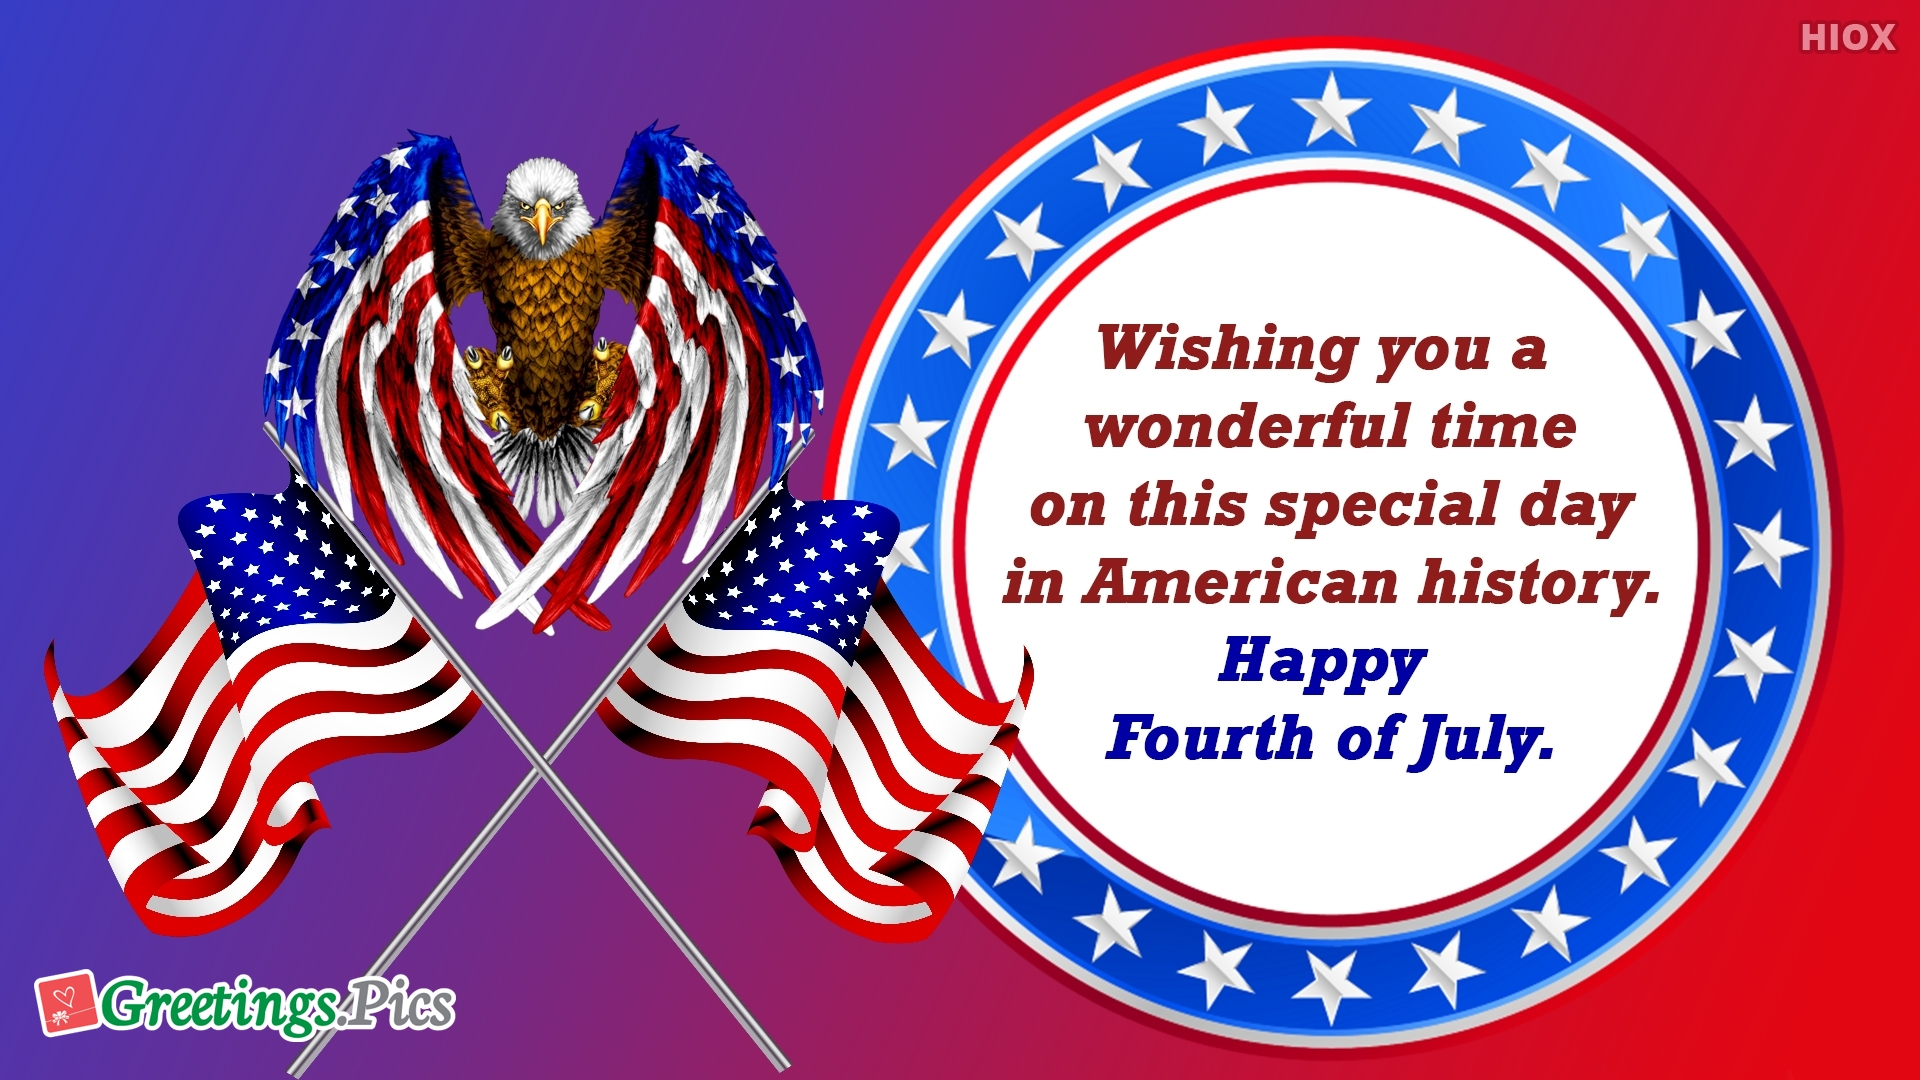 Wishing You A Wonderful Time On This Special Day In American History. Happy Fourth Of July.